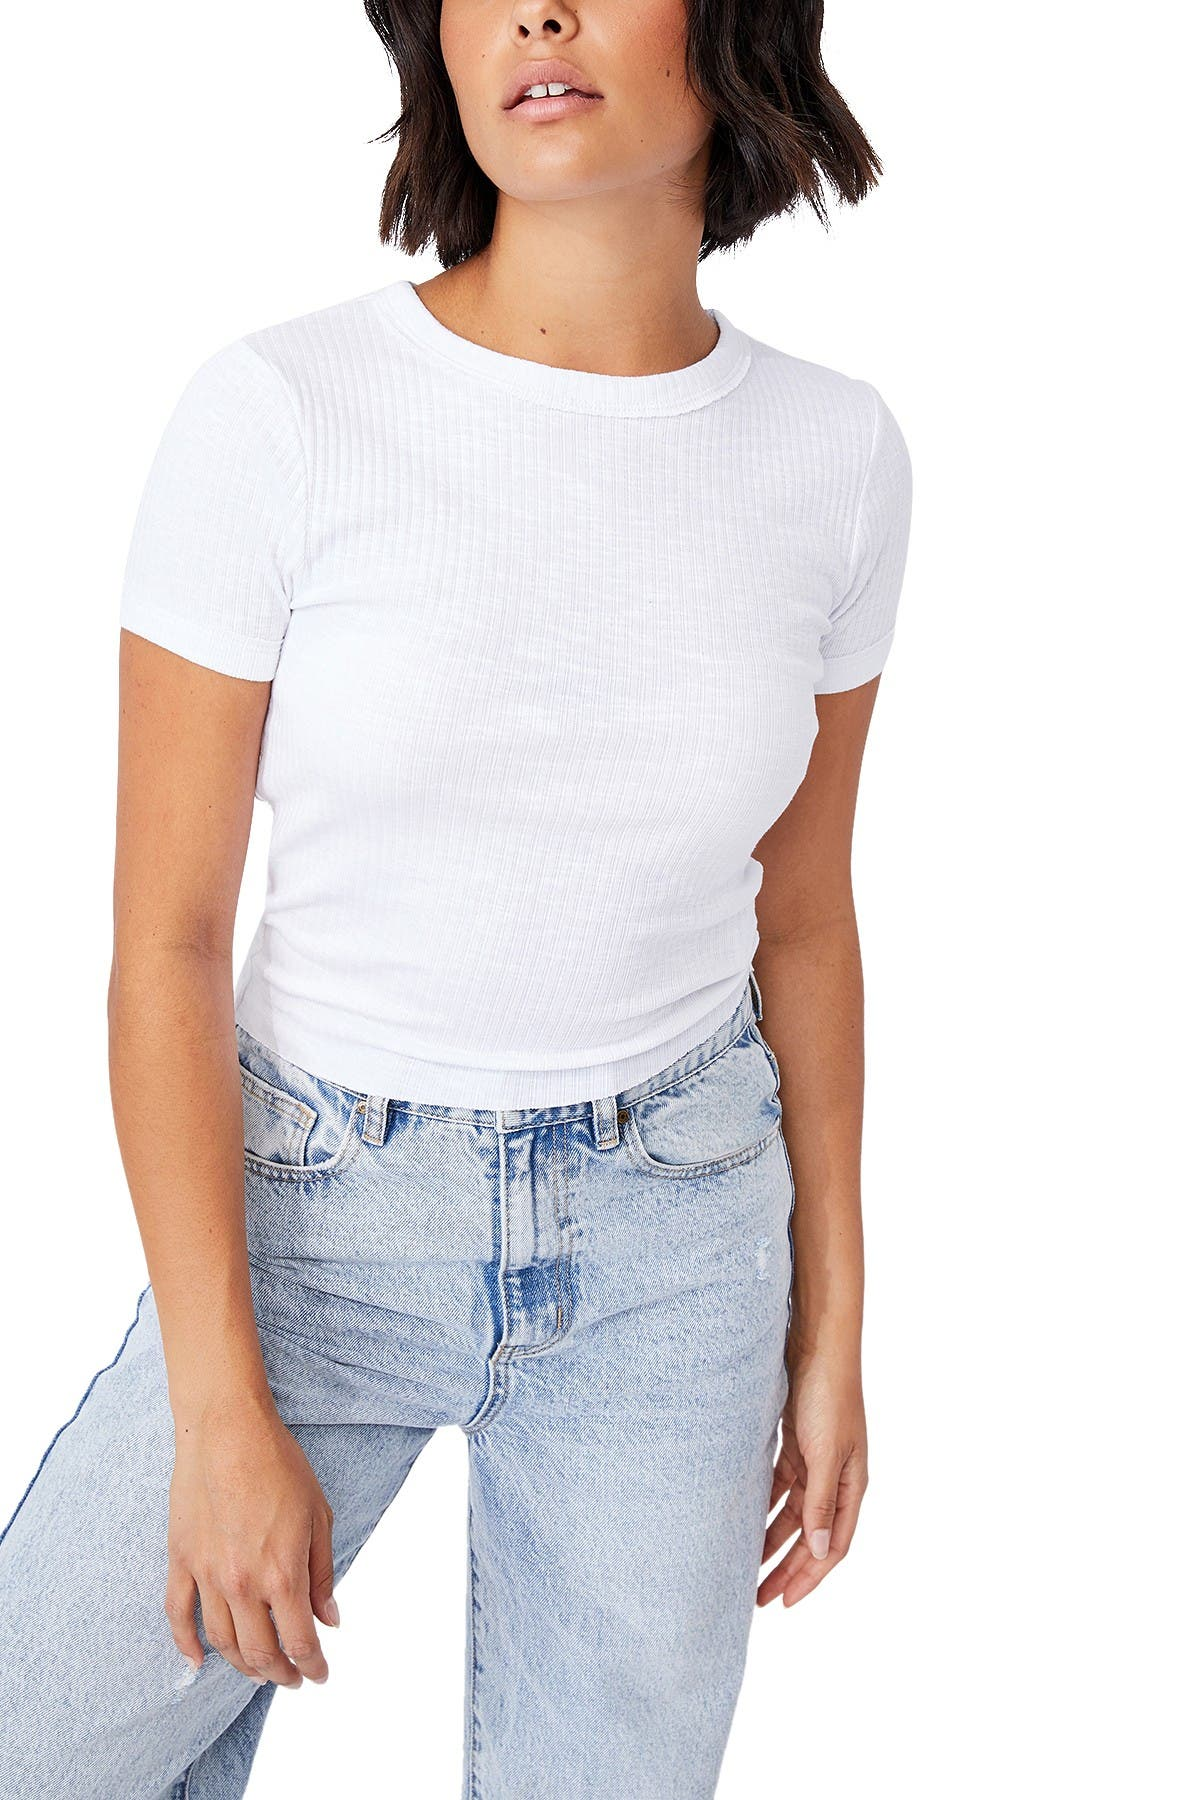 Image of Cotton On Wide Rib Tee